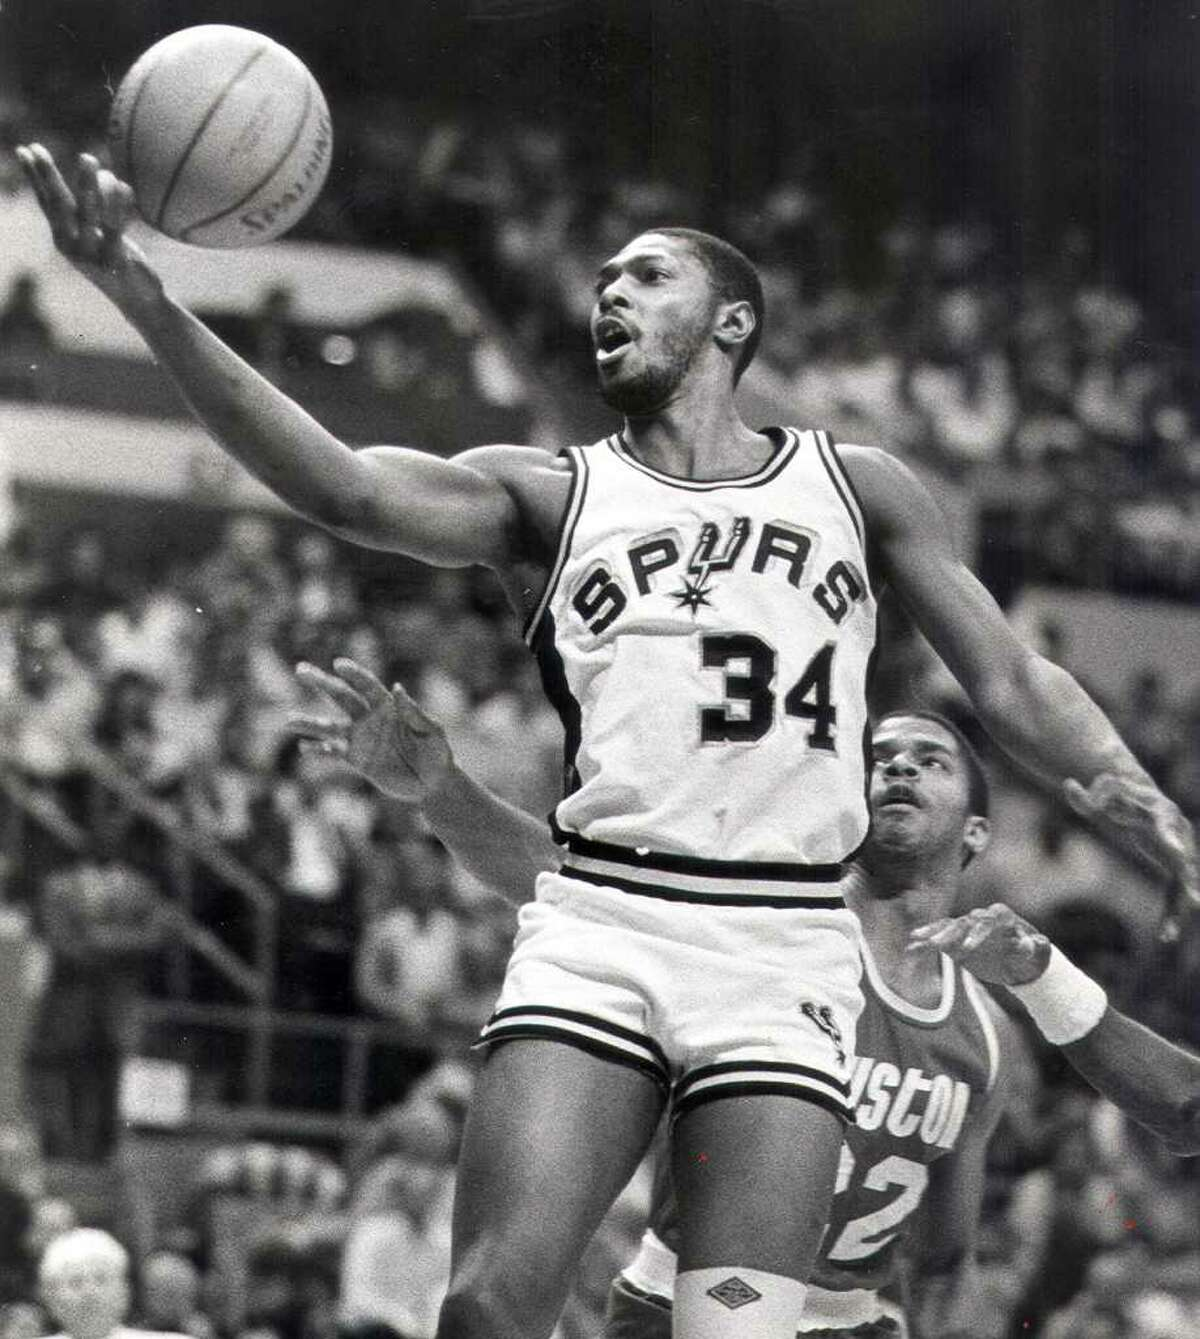 Date: Dec. 24, 1981 Deal: Spurs trade Ron Brewer, Reggie Johnson and cash to Cleveland Cavaliers for Mike Mitchell and Roger Phegley.